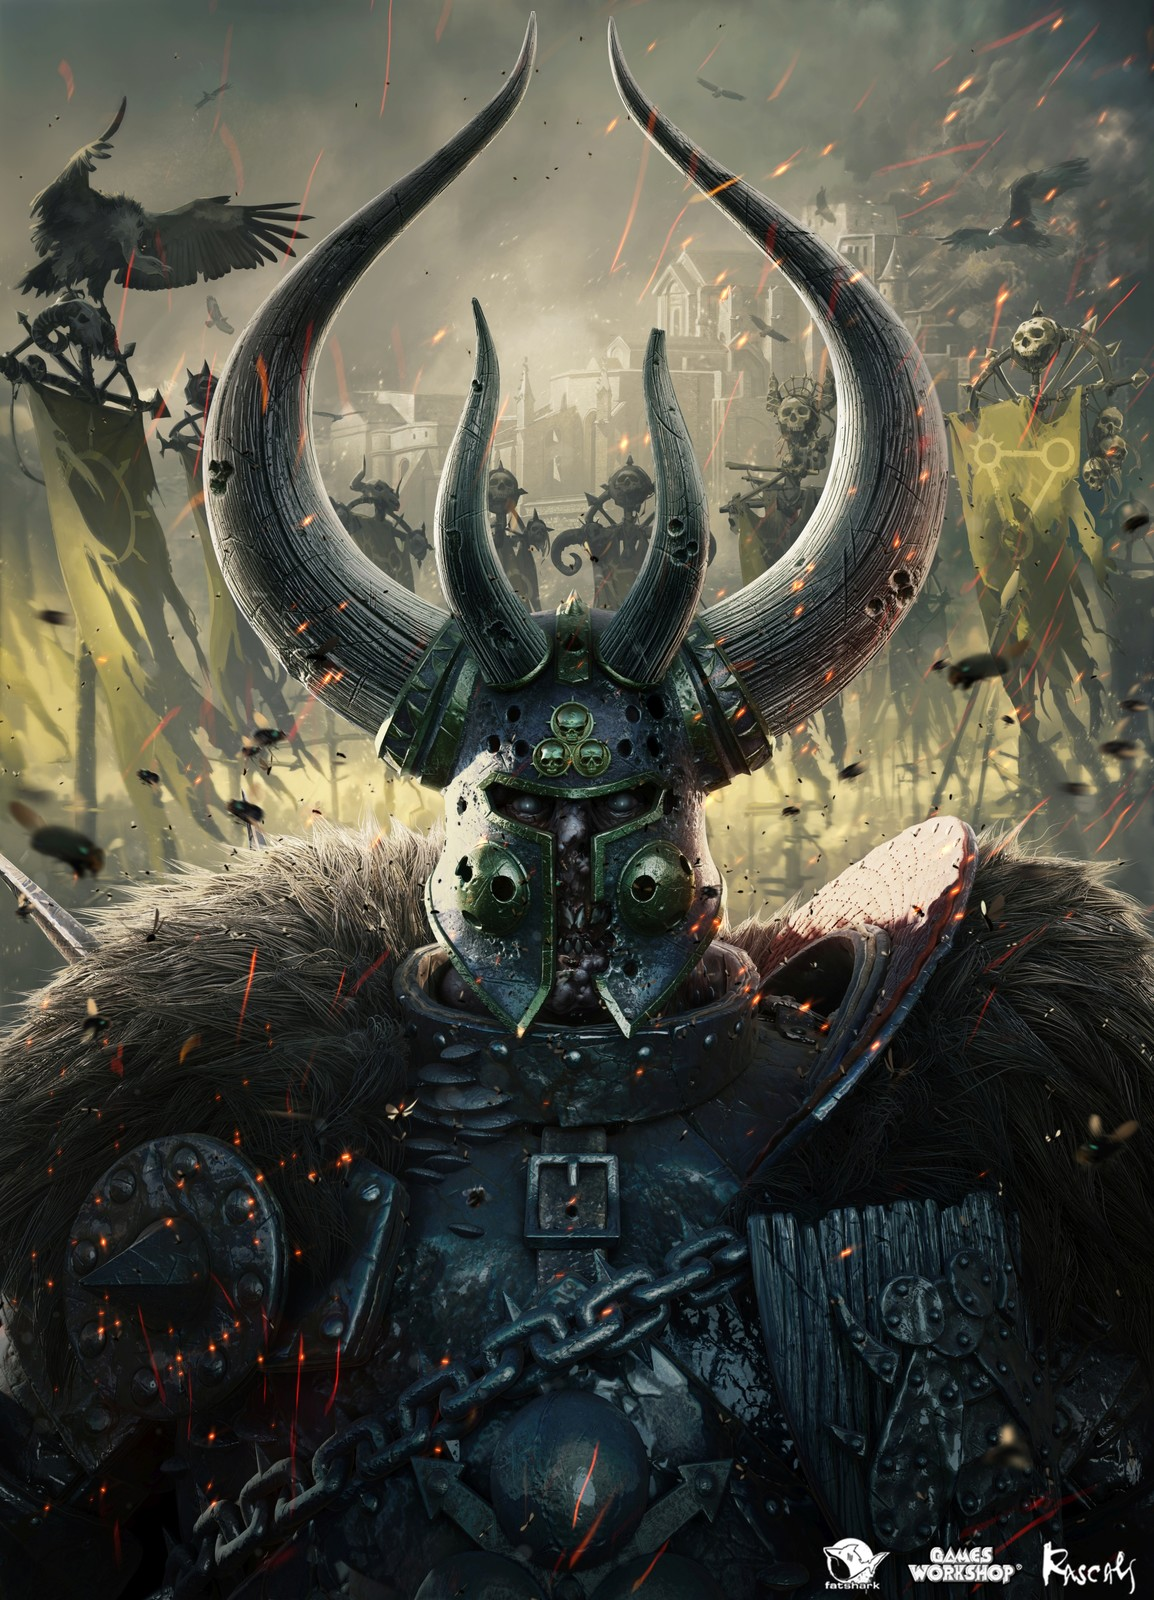 Box art for Warhammer: Vermintide II, one of the marketing assets we made for the game.